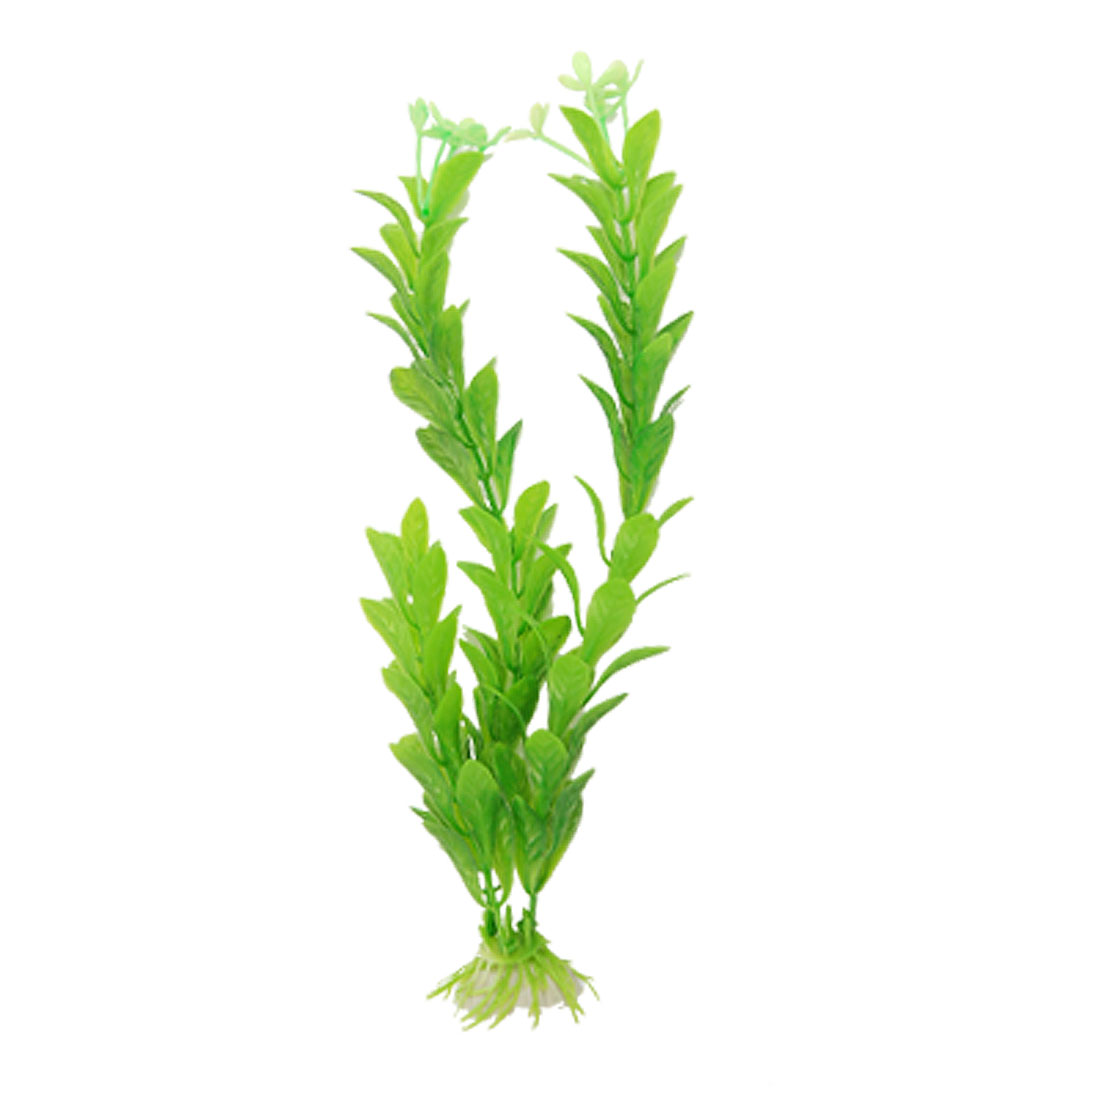 Green Plastic Underwater Plants Aquarium Fish Tank Ornament